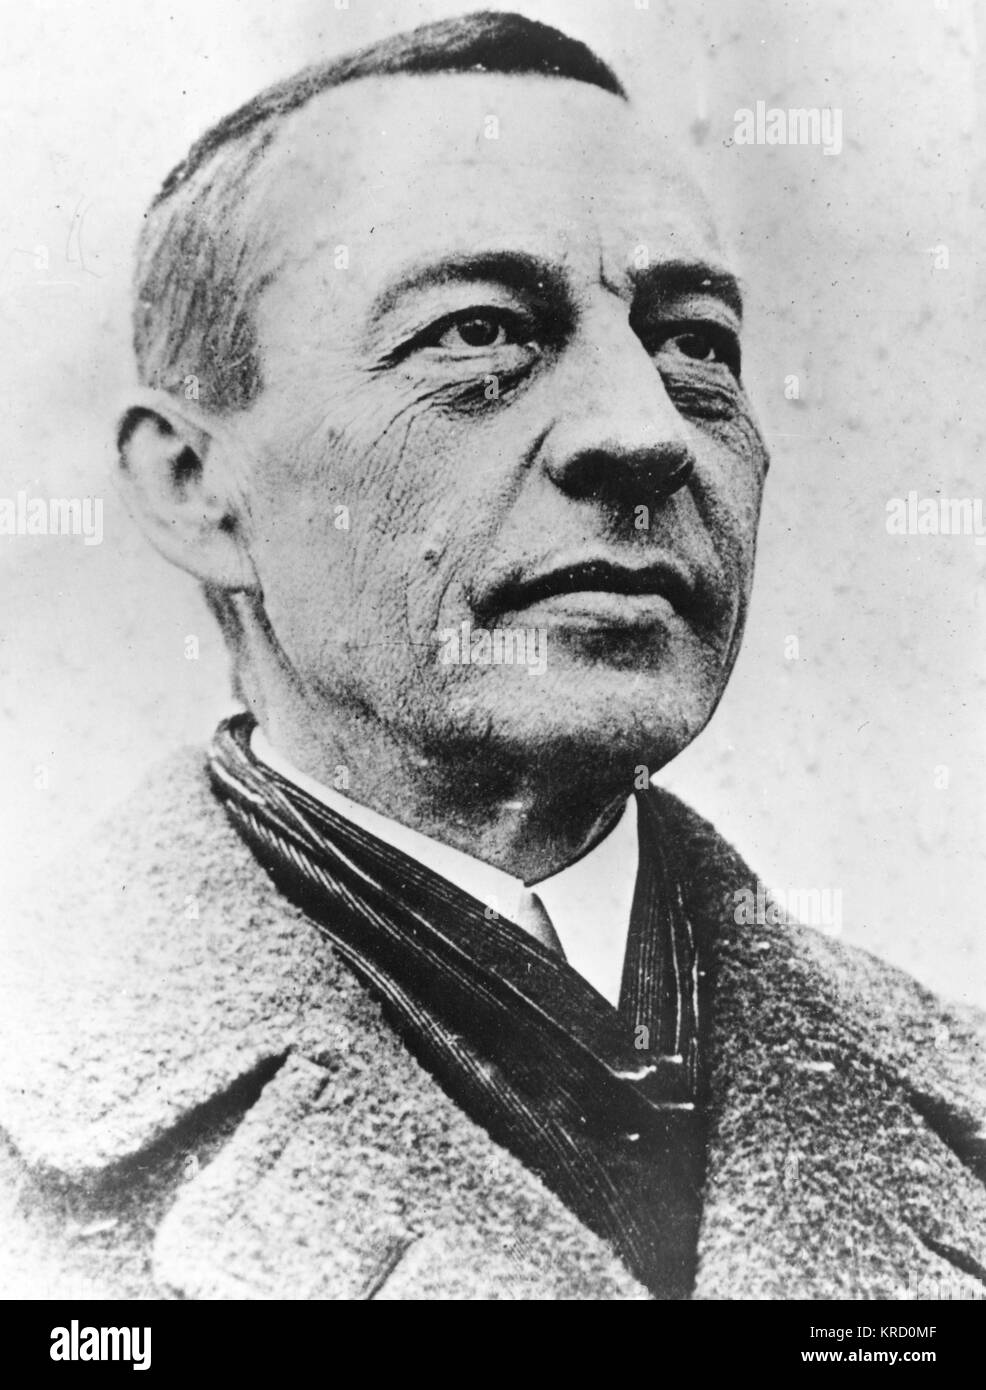 Sergei Vasilievich Rachmaninov, Russian composer, pianist and conductor.       Date: 1873 - 1943 - Stock Image